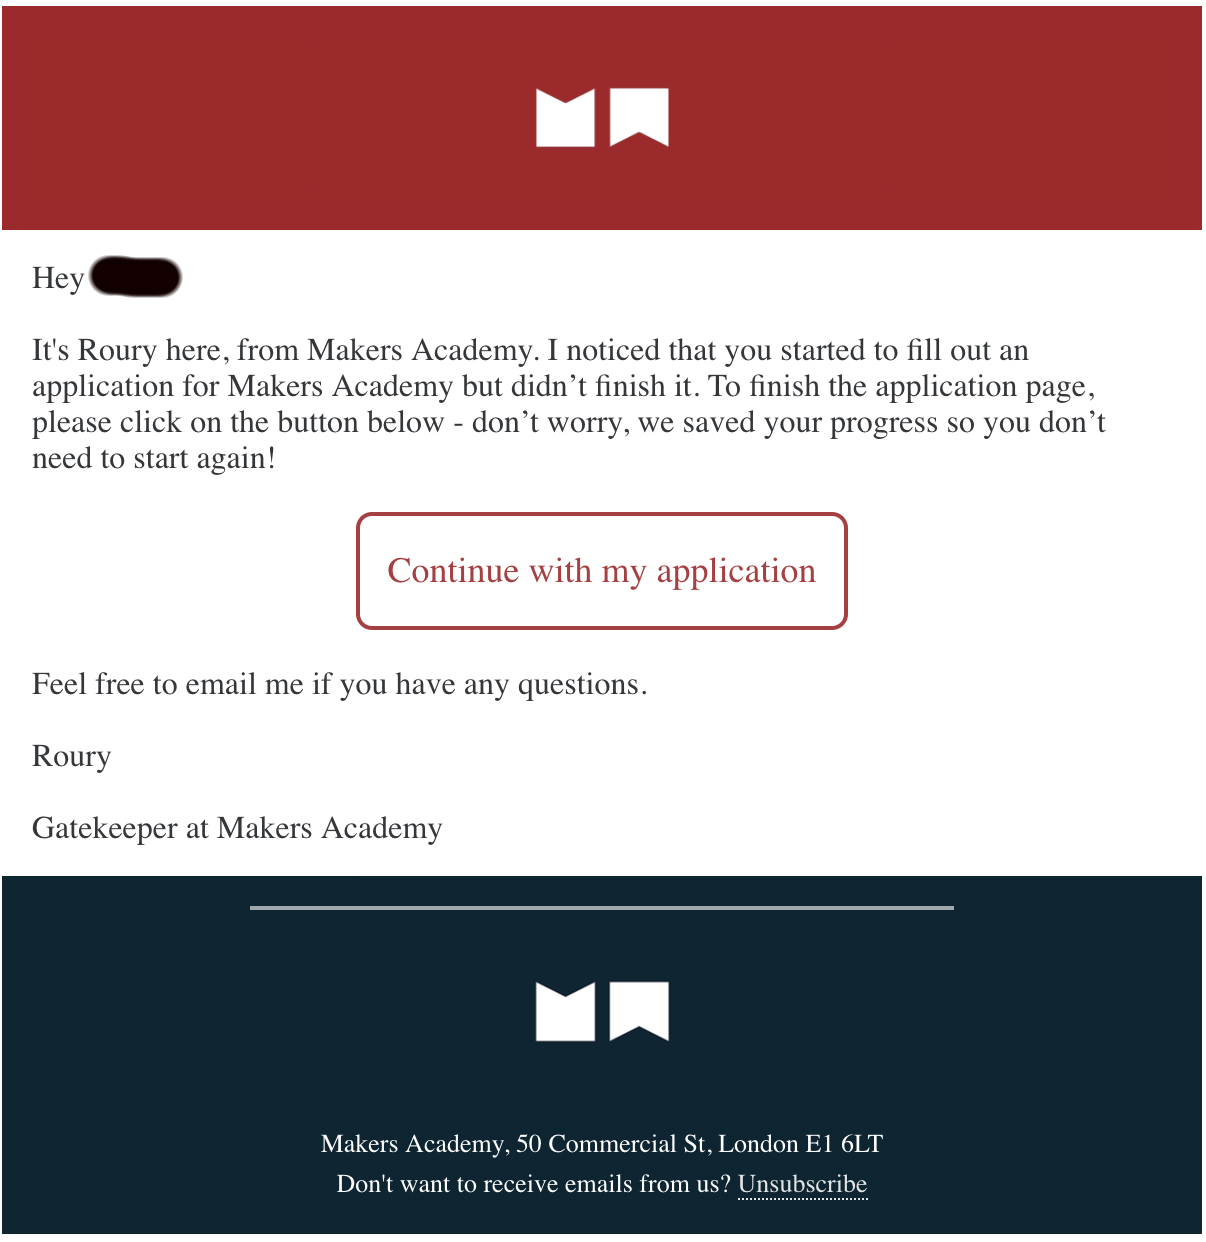 transactional email Makers Academy example